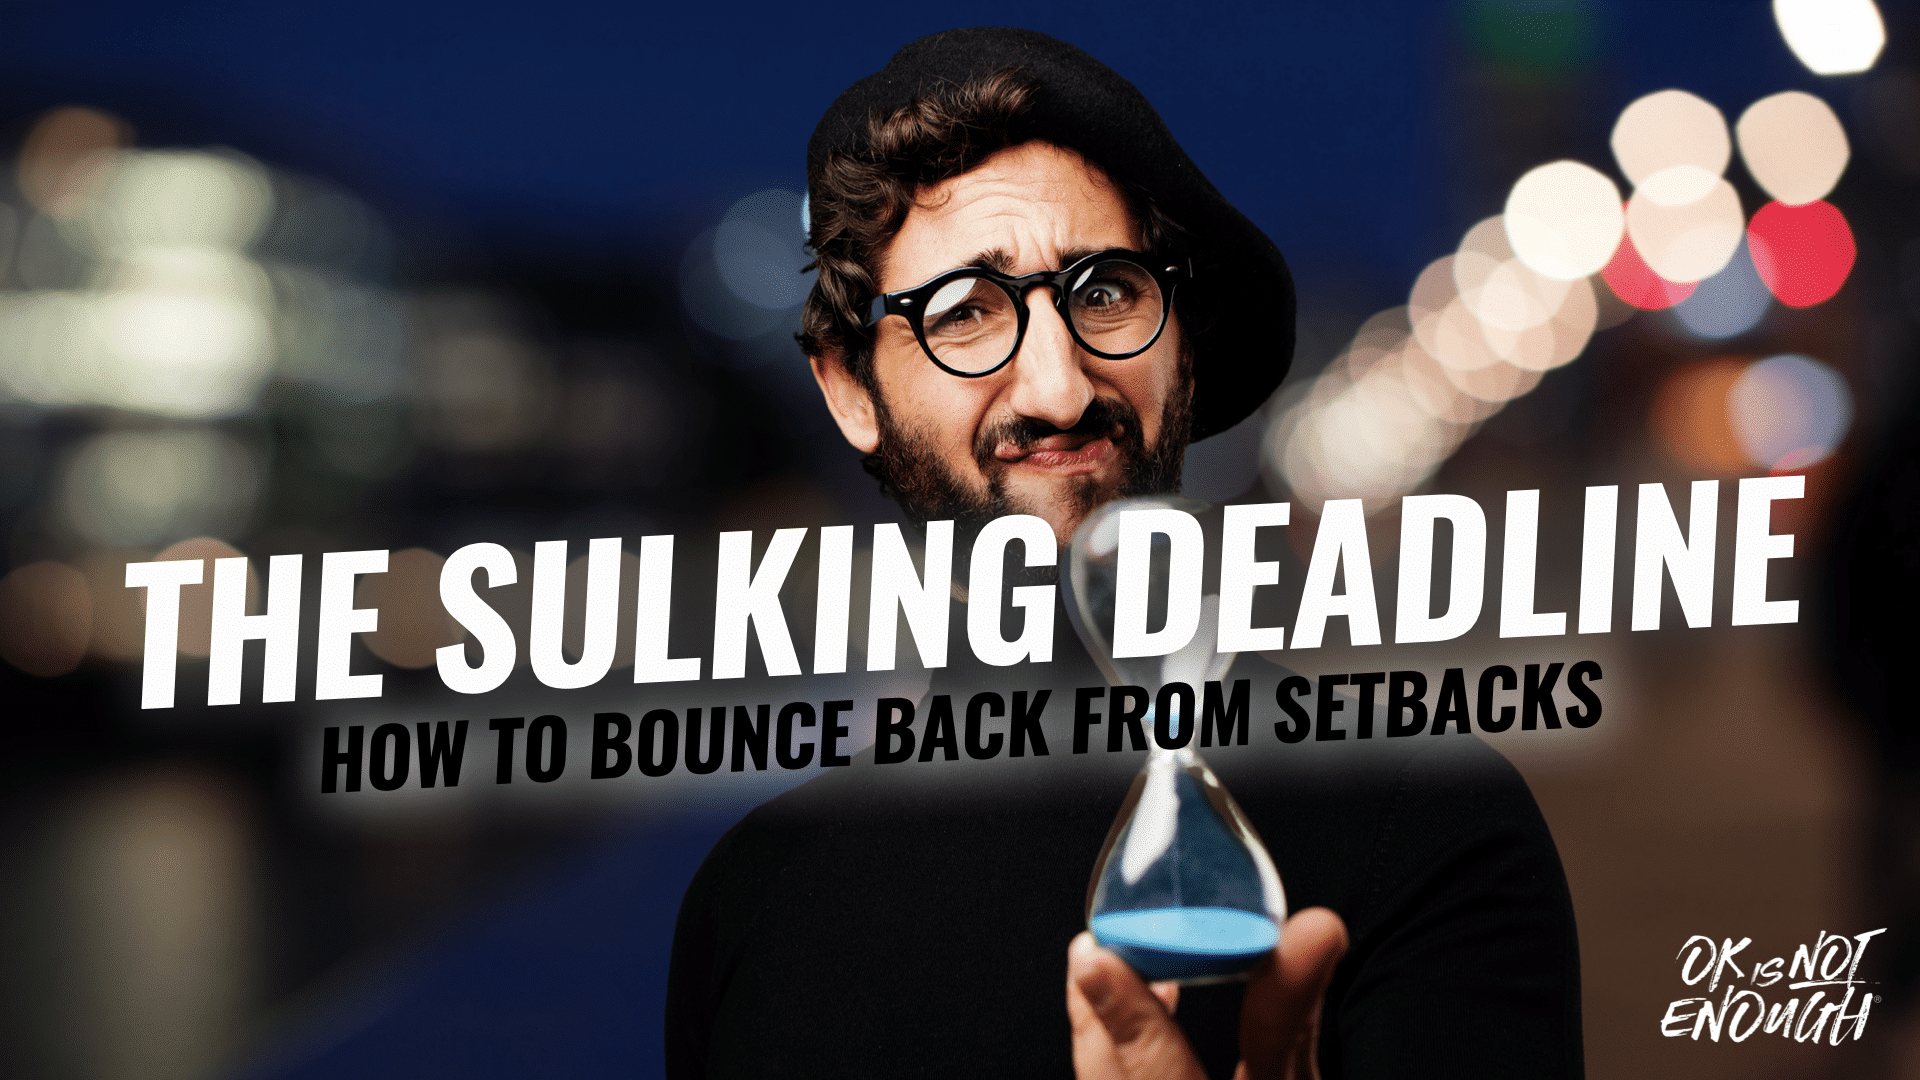 How to bounce back from setback - The sulking deadline